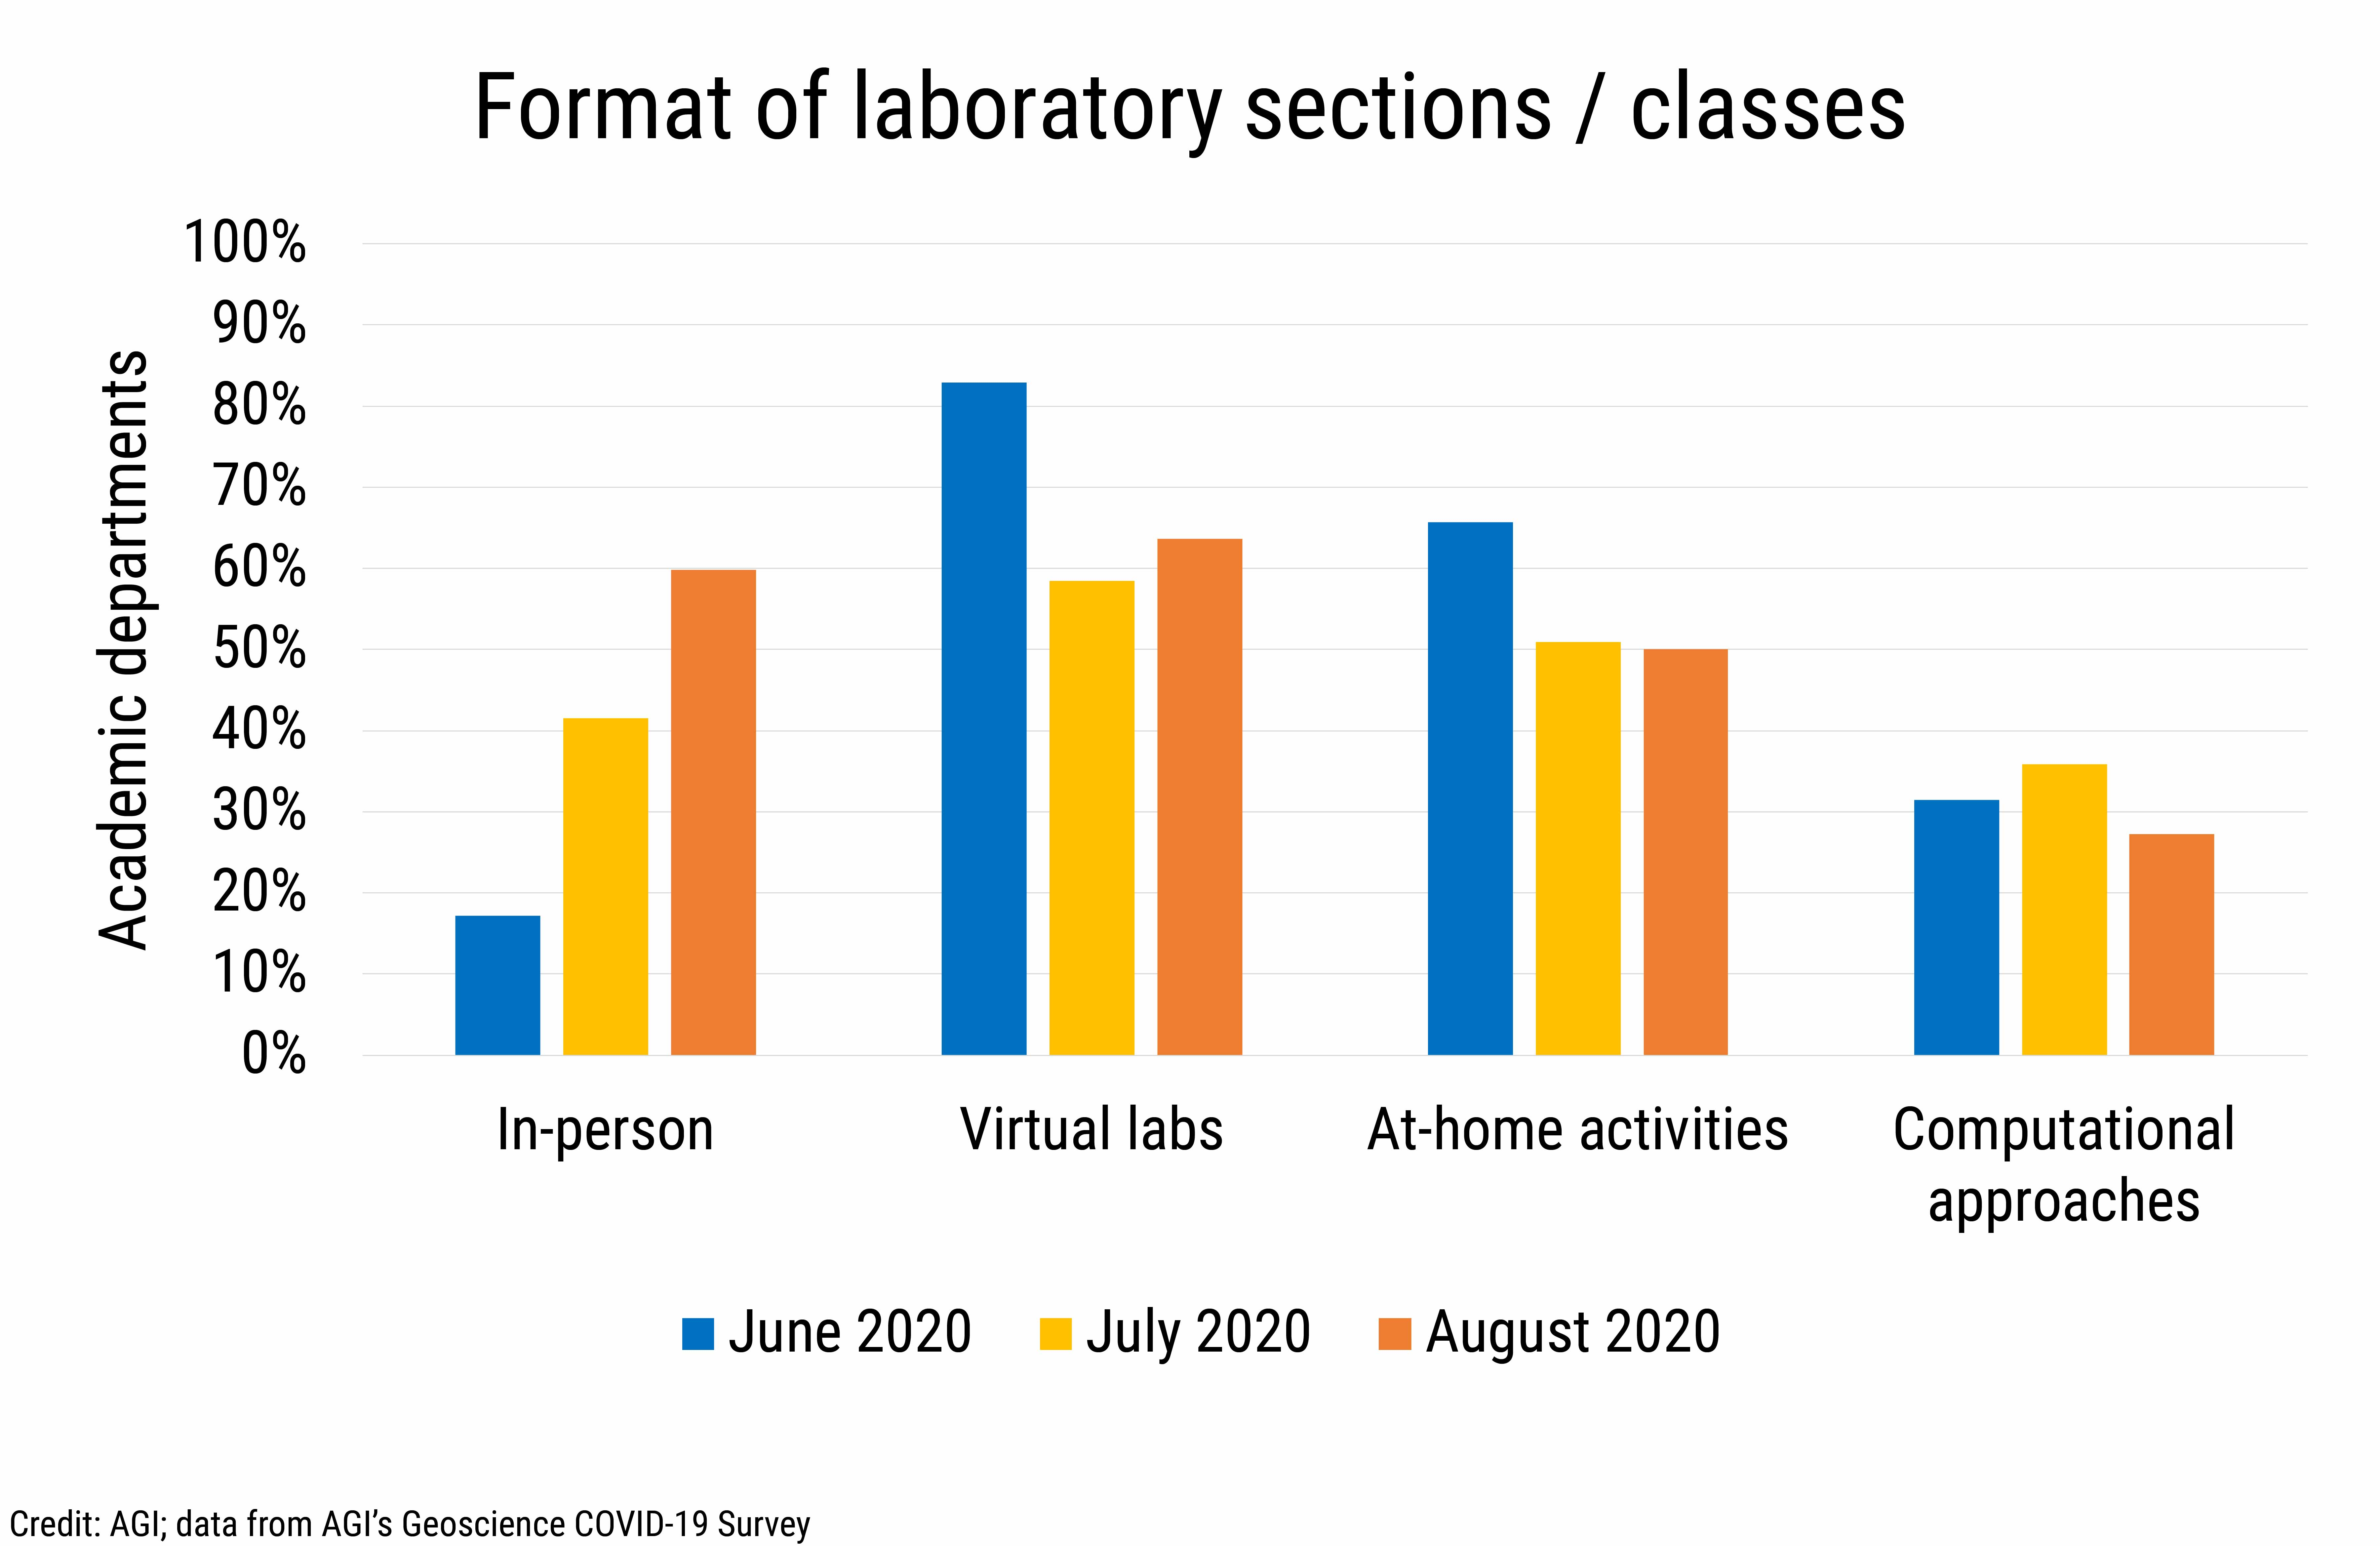 DB_2020-020: chart 02:  Format of laboratory sections / classes (Credit: AGI; data from AGI's Geoscience COVID-19 Survey)